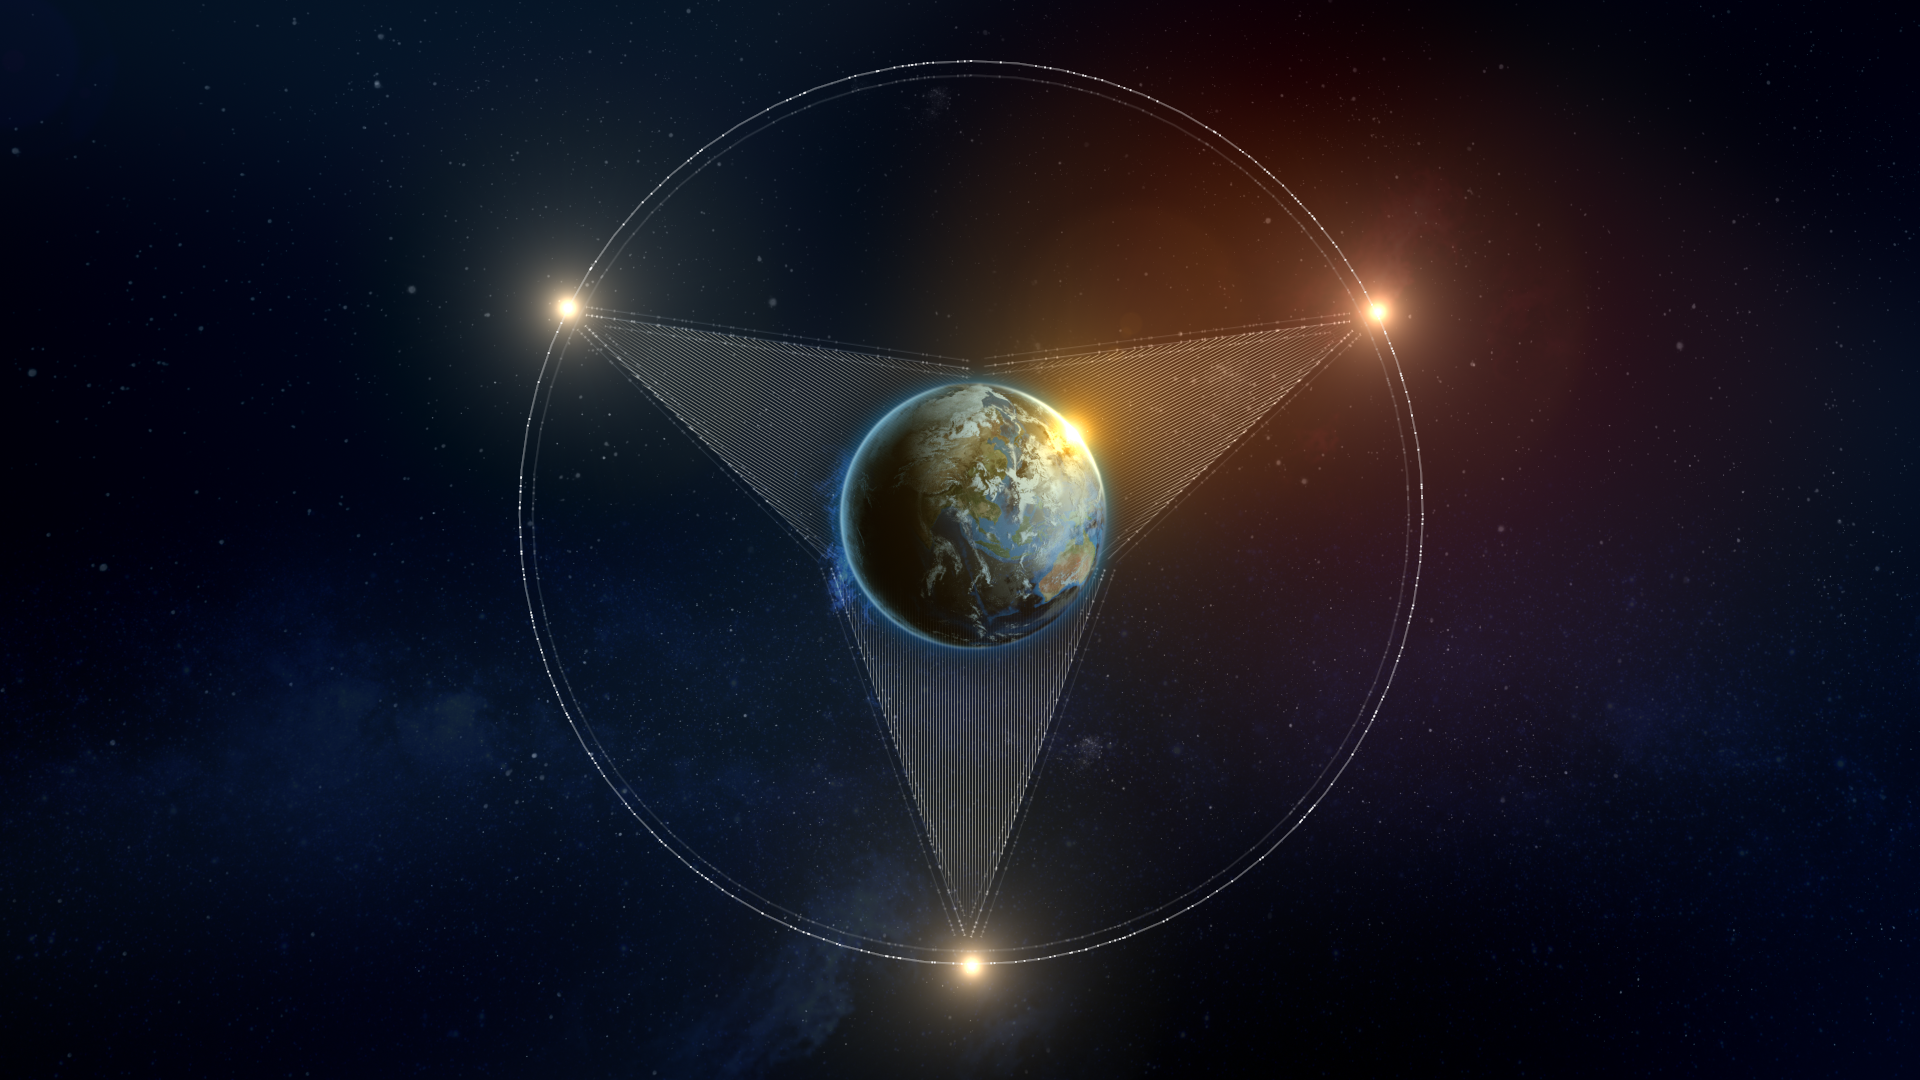 A still from a sequence illustrating geostationary satellites and their ability to blanket the earth in communications.